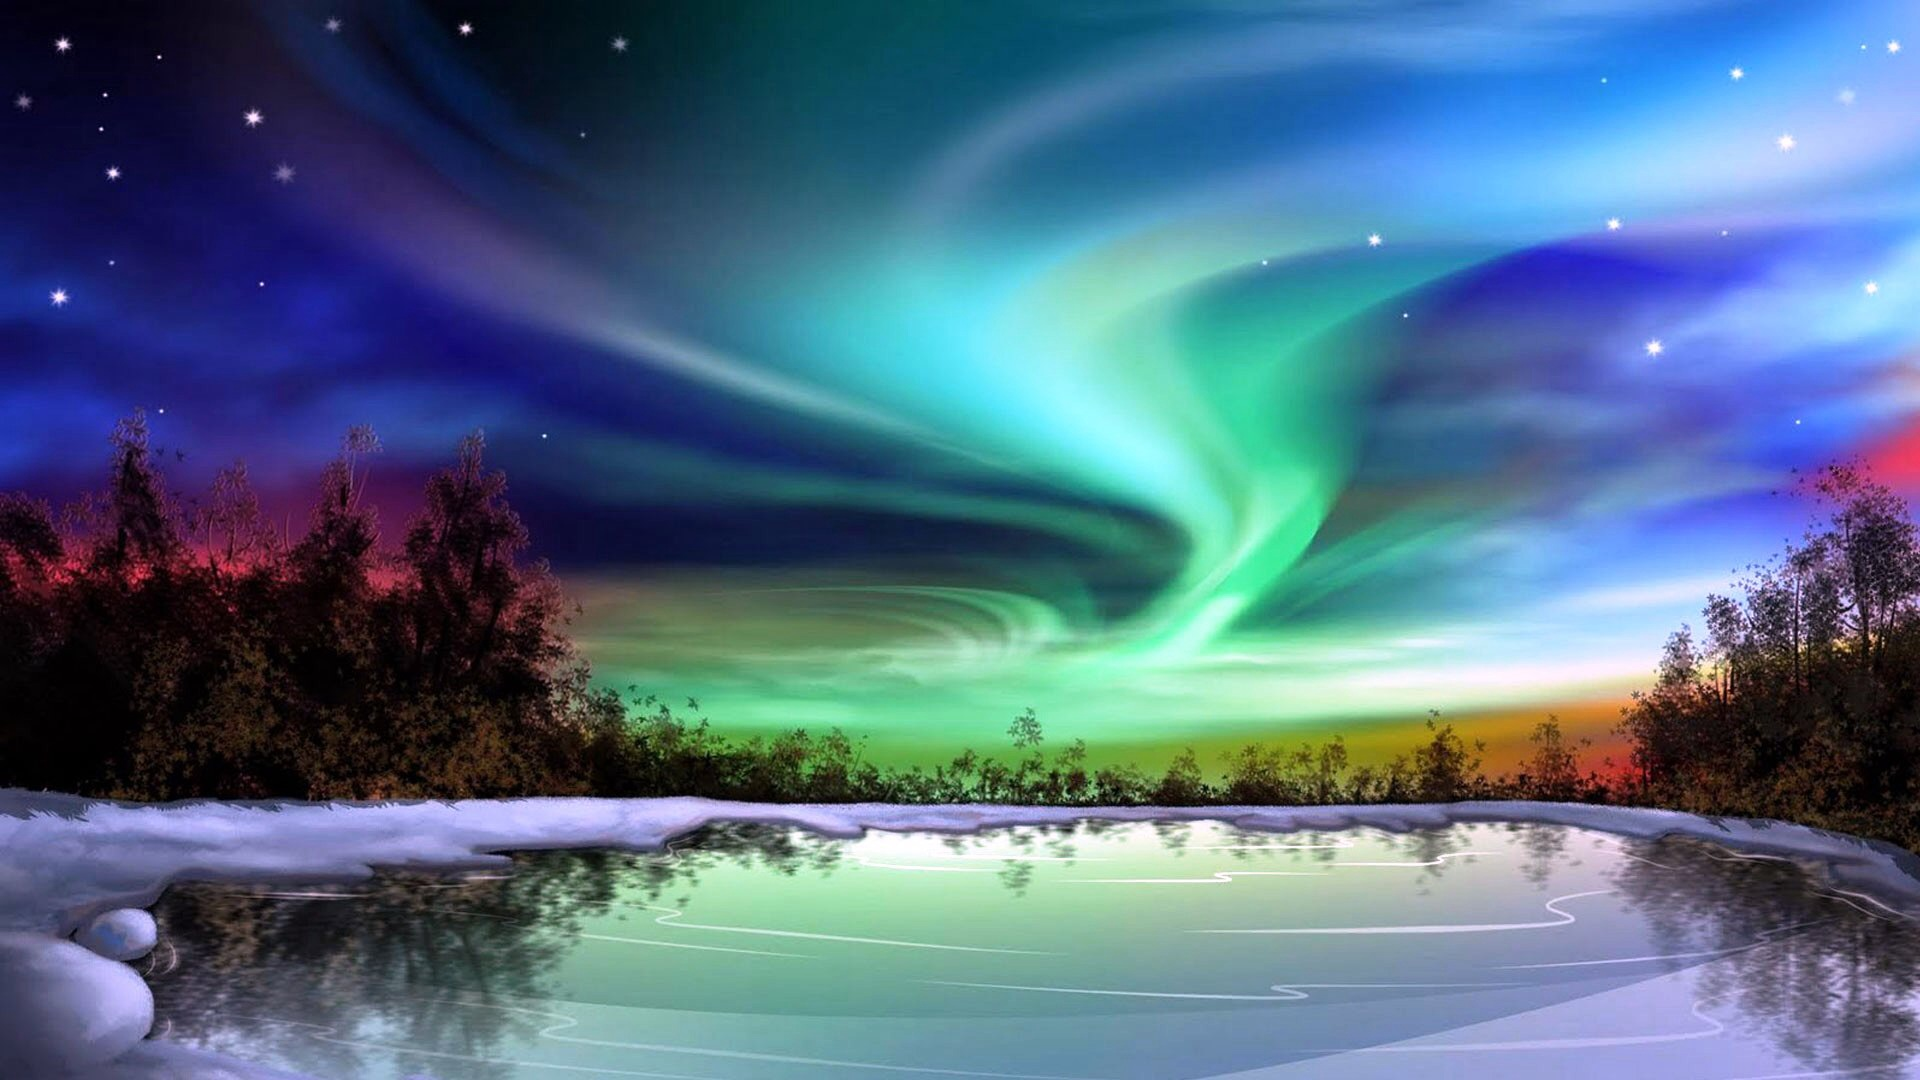 aurora borealis images northern lights hd wallpaper and. Black Bedroom Furniture Sets. Home Design Ideas